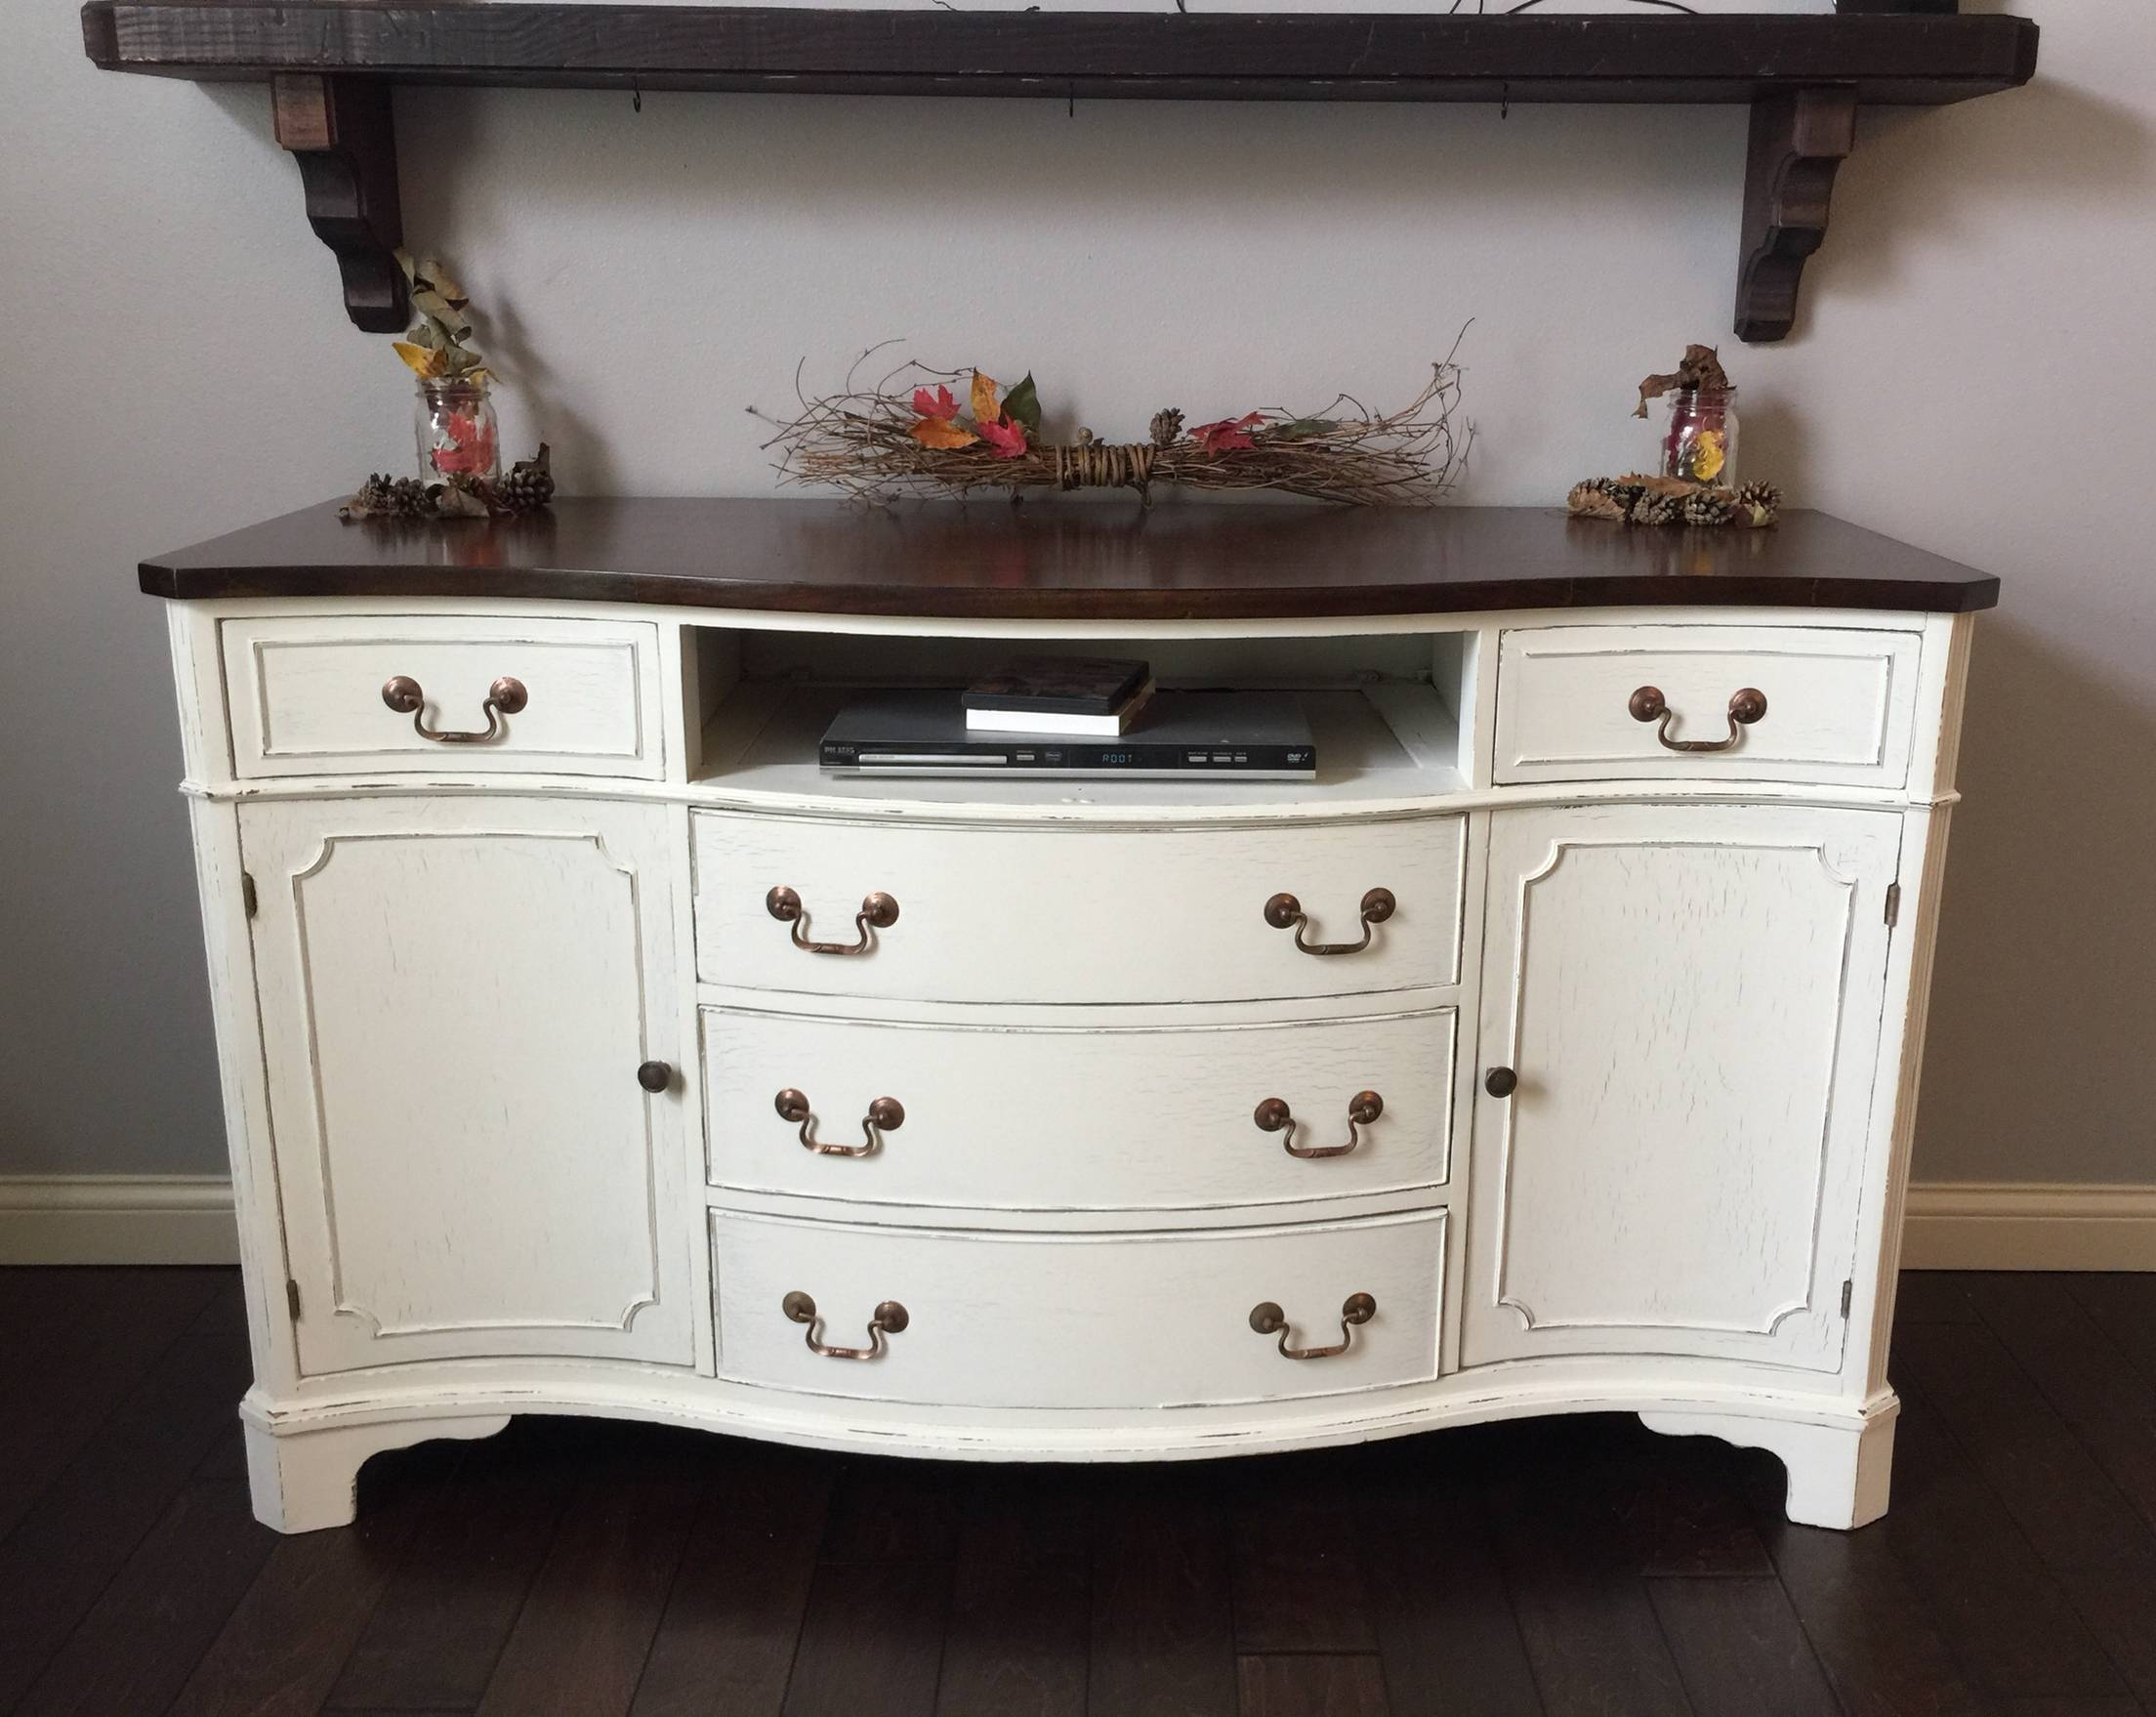 Awesome Distressed Buffet Sideboard – Bjdgjy With Regard To Distressed Buffet Sideboards (View 14 of 15)